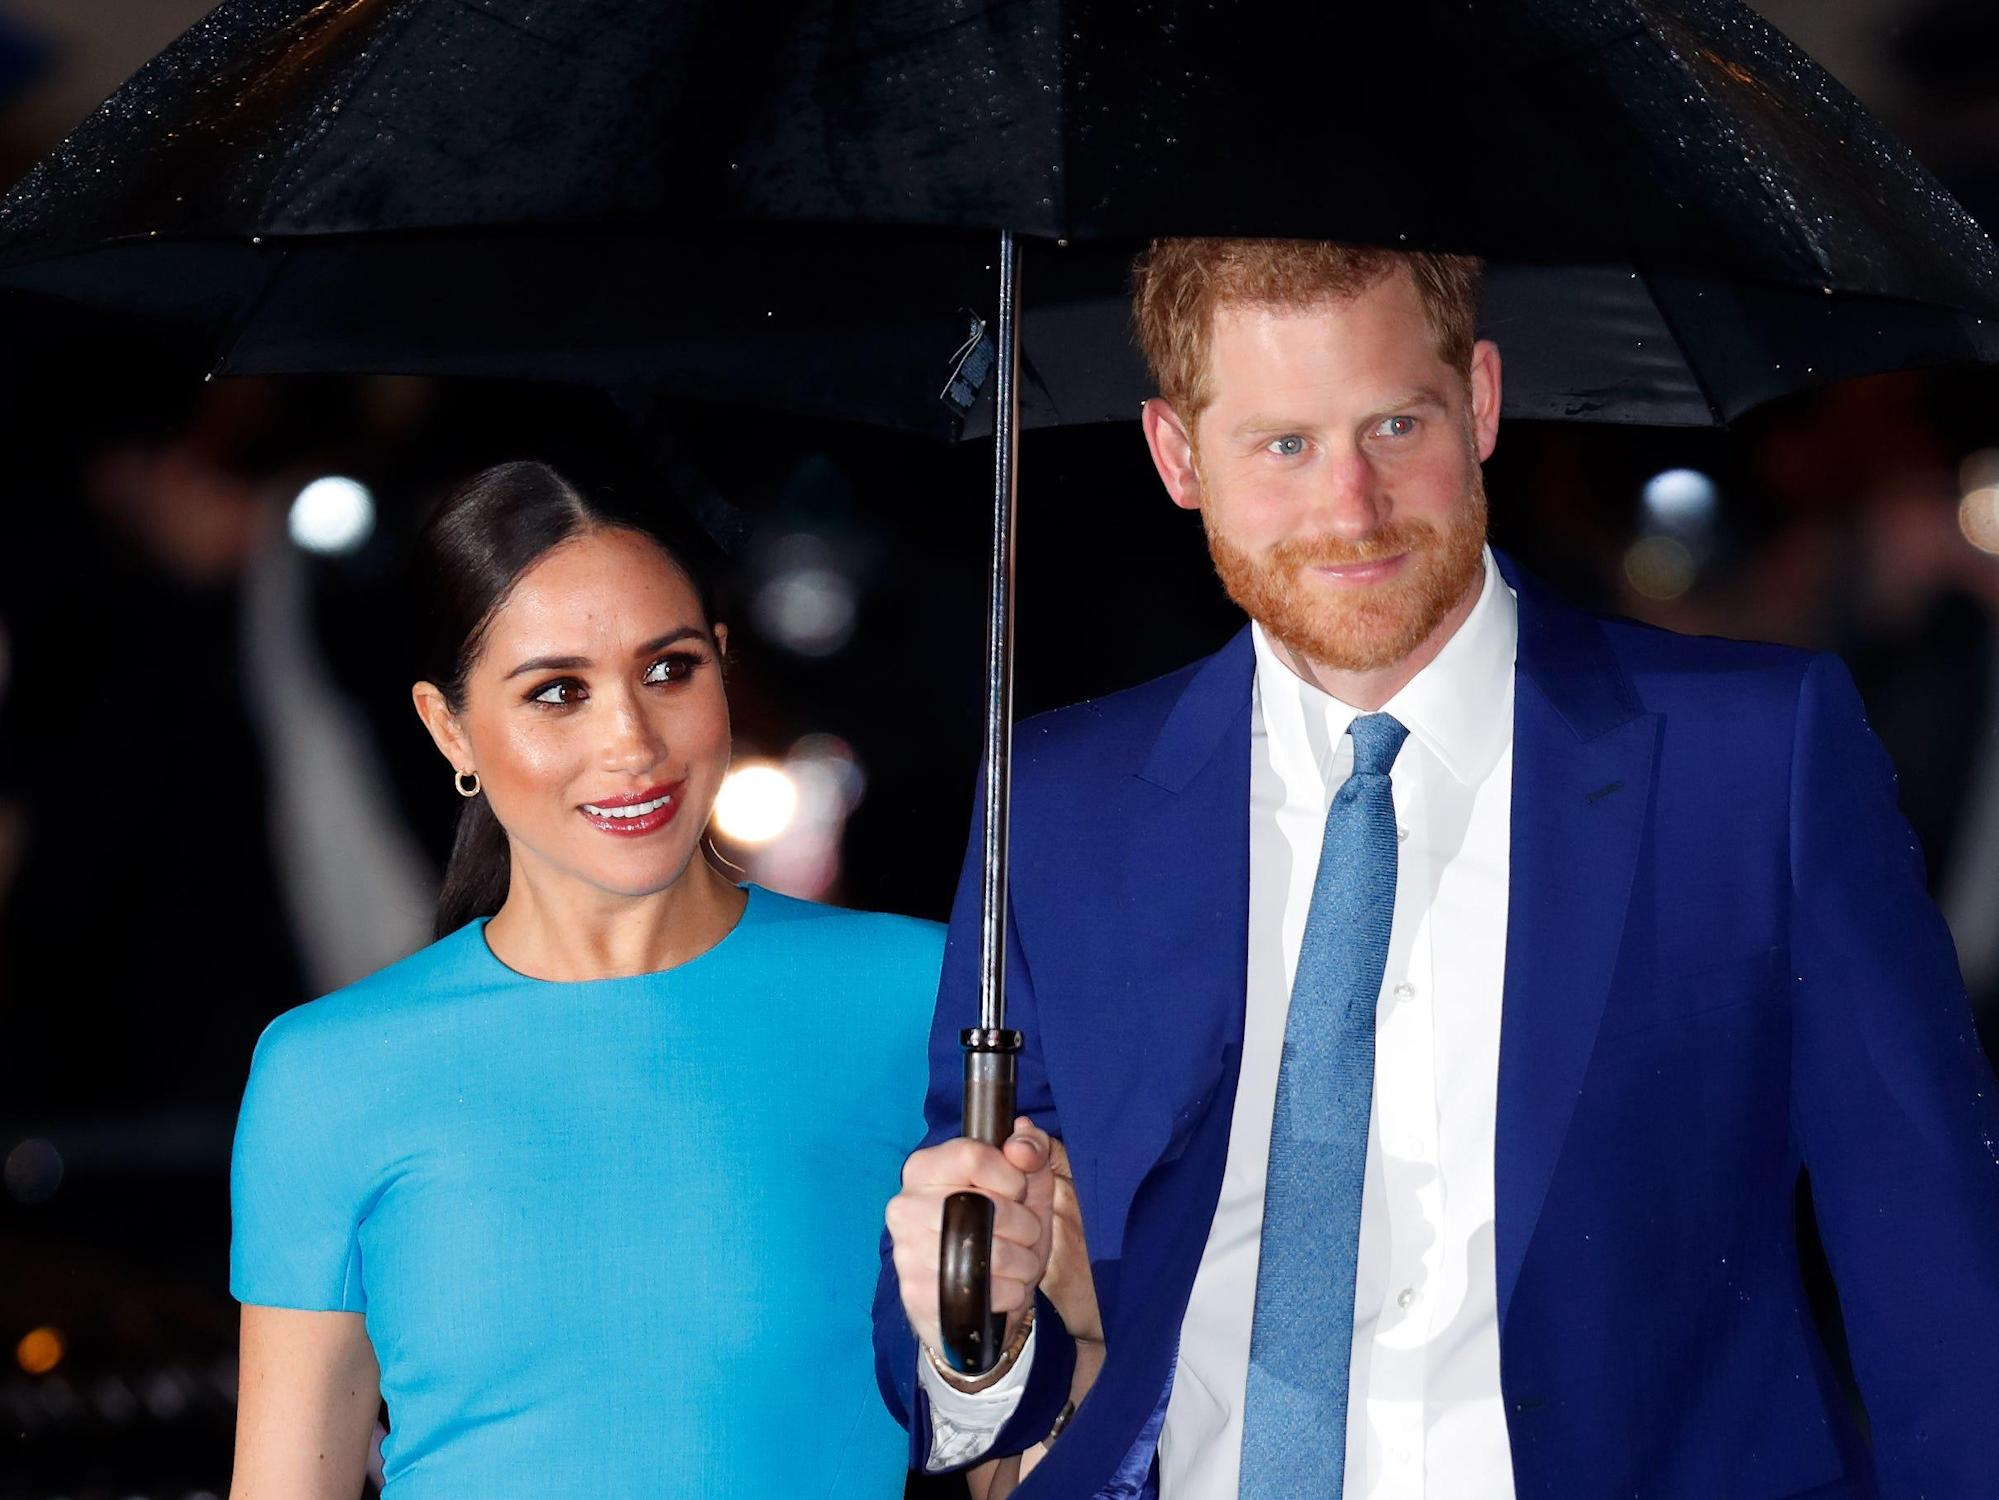 Buckingham Palace updated the line of succession to include Prince Harry and Meghan Markle's daughter Lilibet almost 2 months after her birth